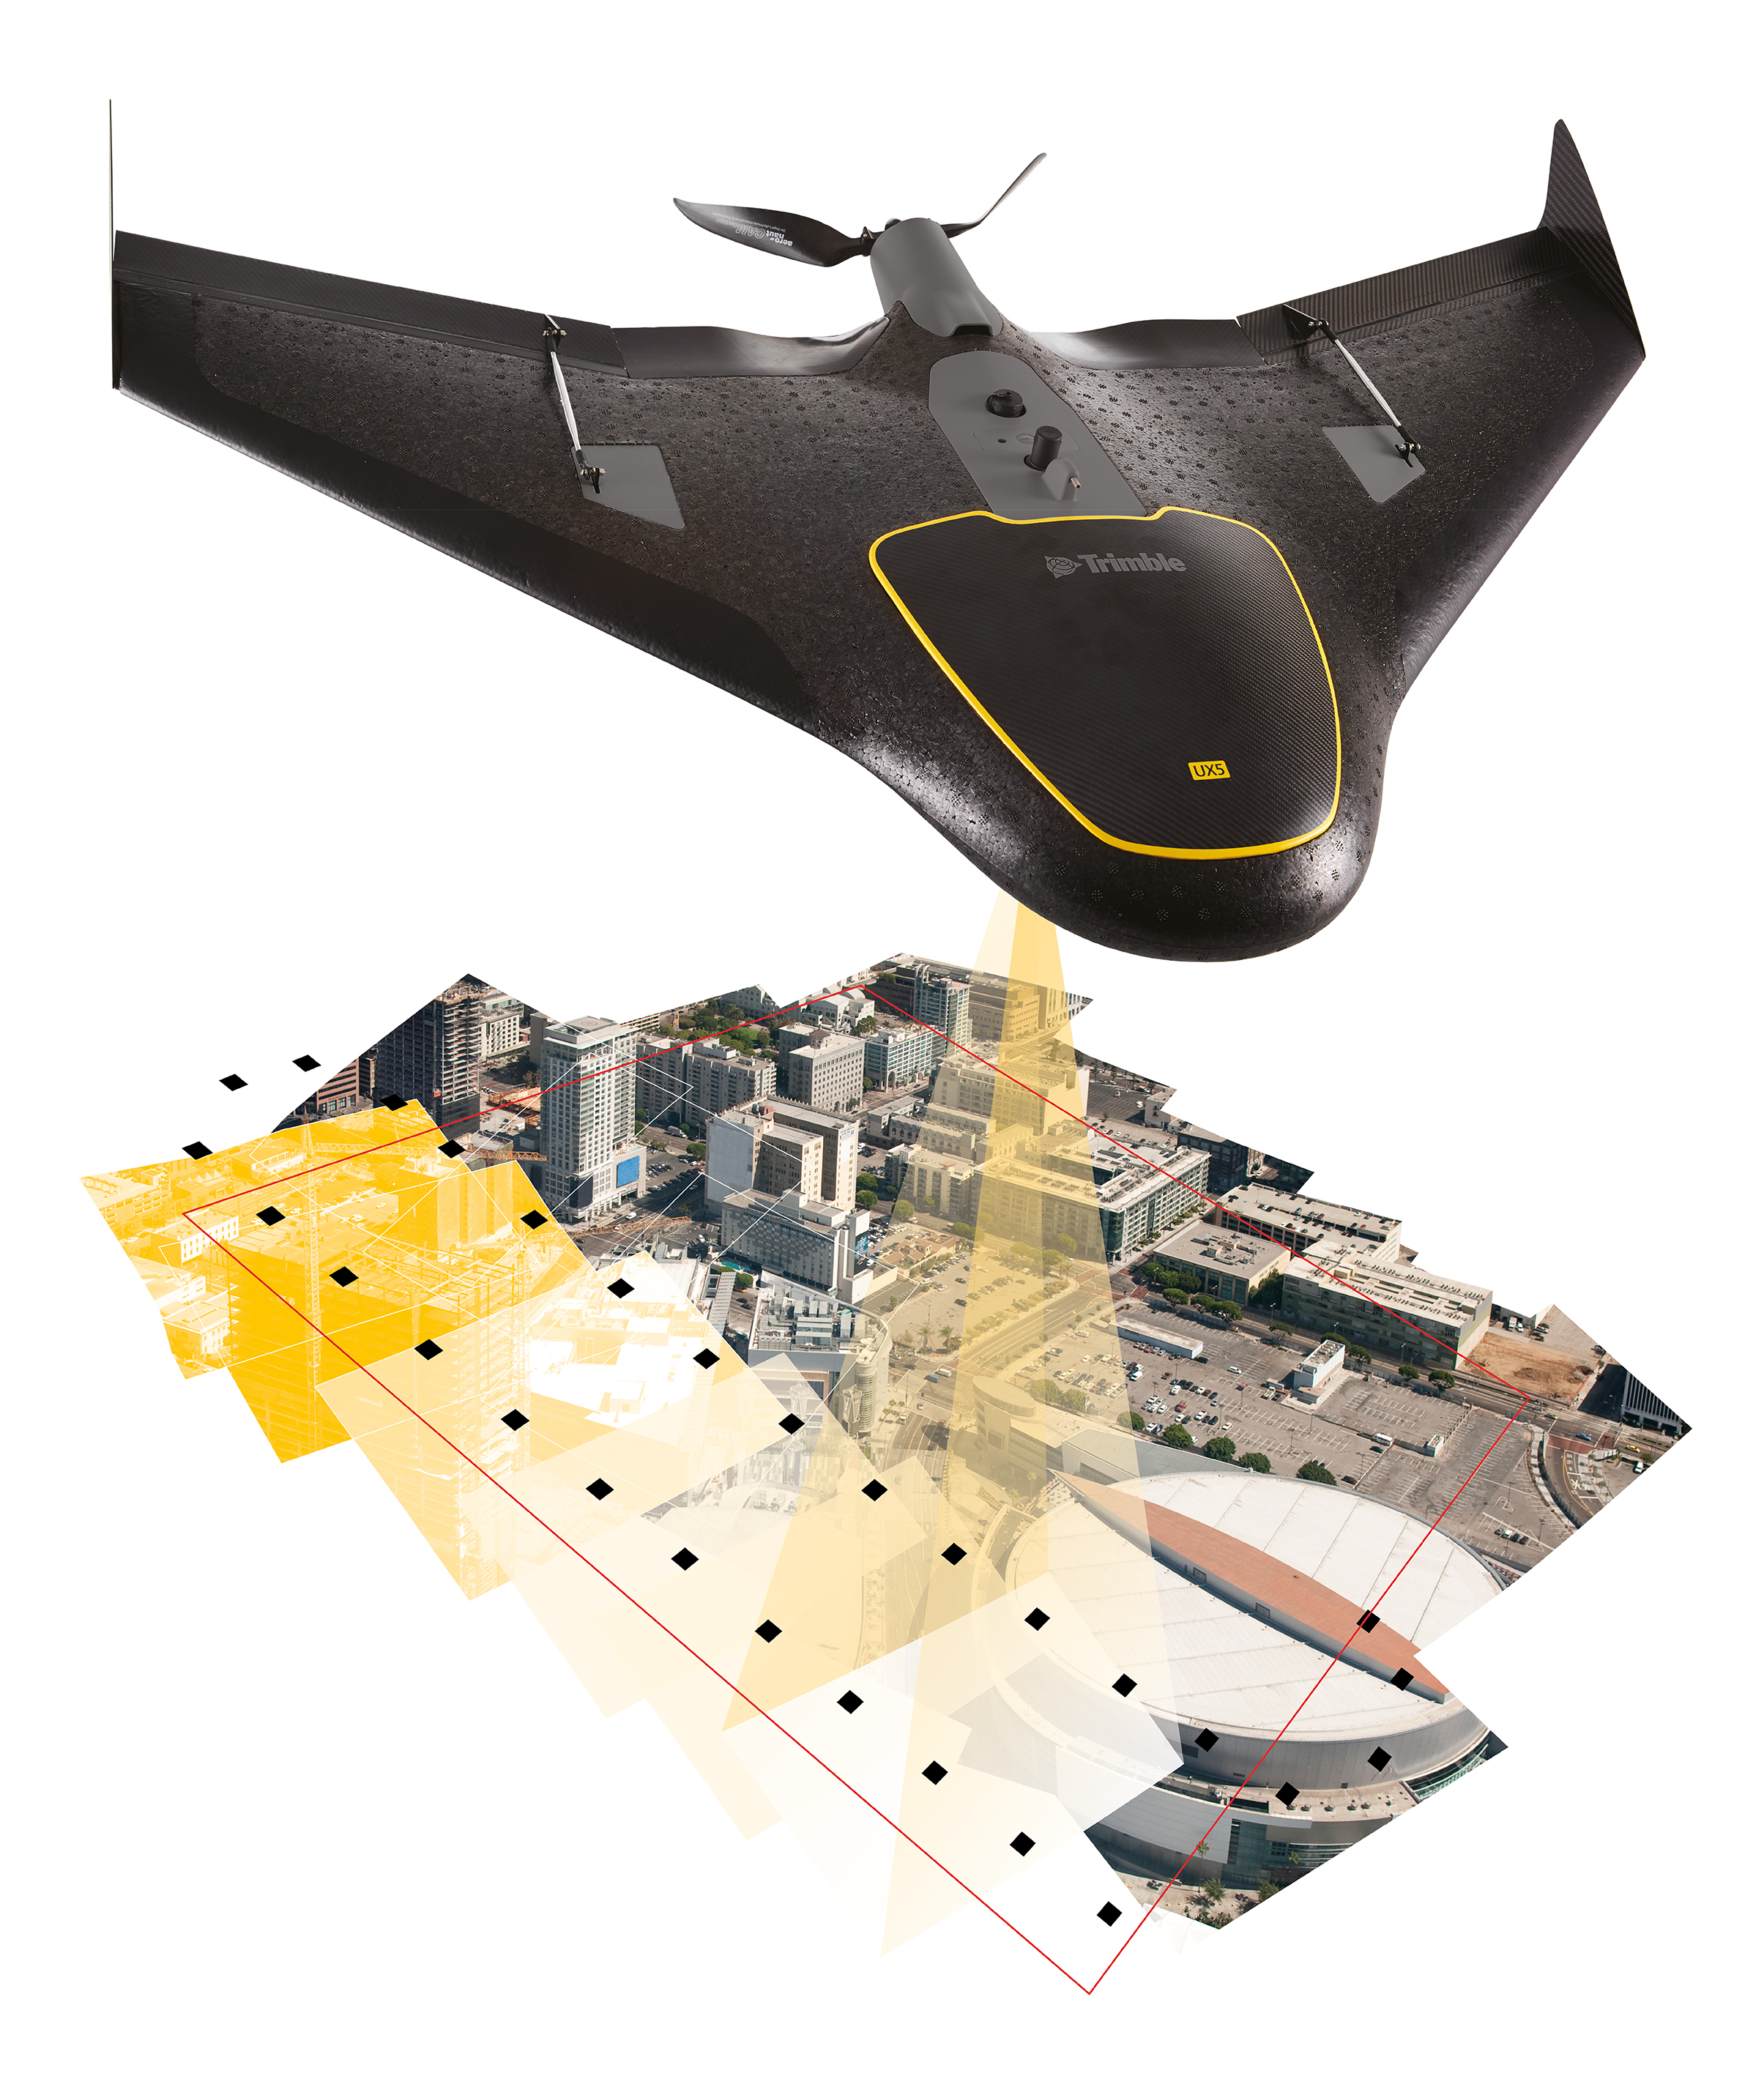 Trimble UX5 Unmanned Aircraft System - Trimble Products from Trimble Navigation, USA - UX5, UX5 HP,